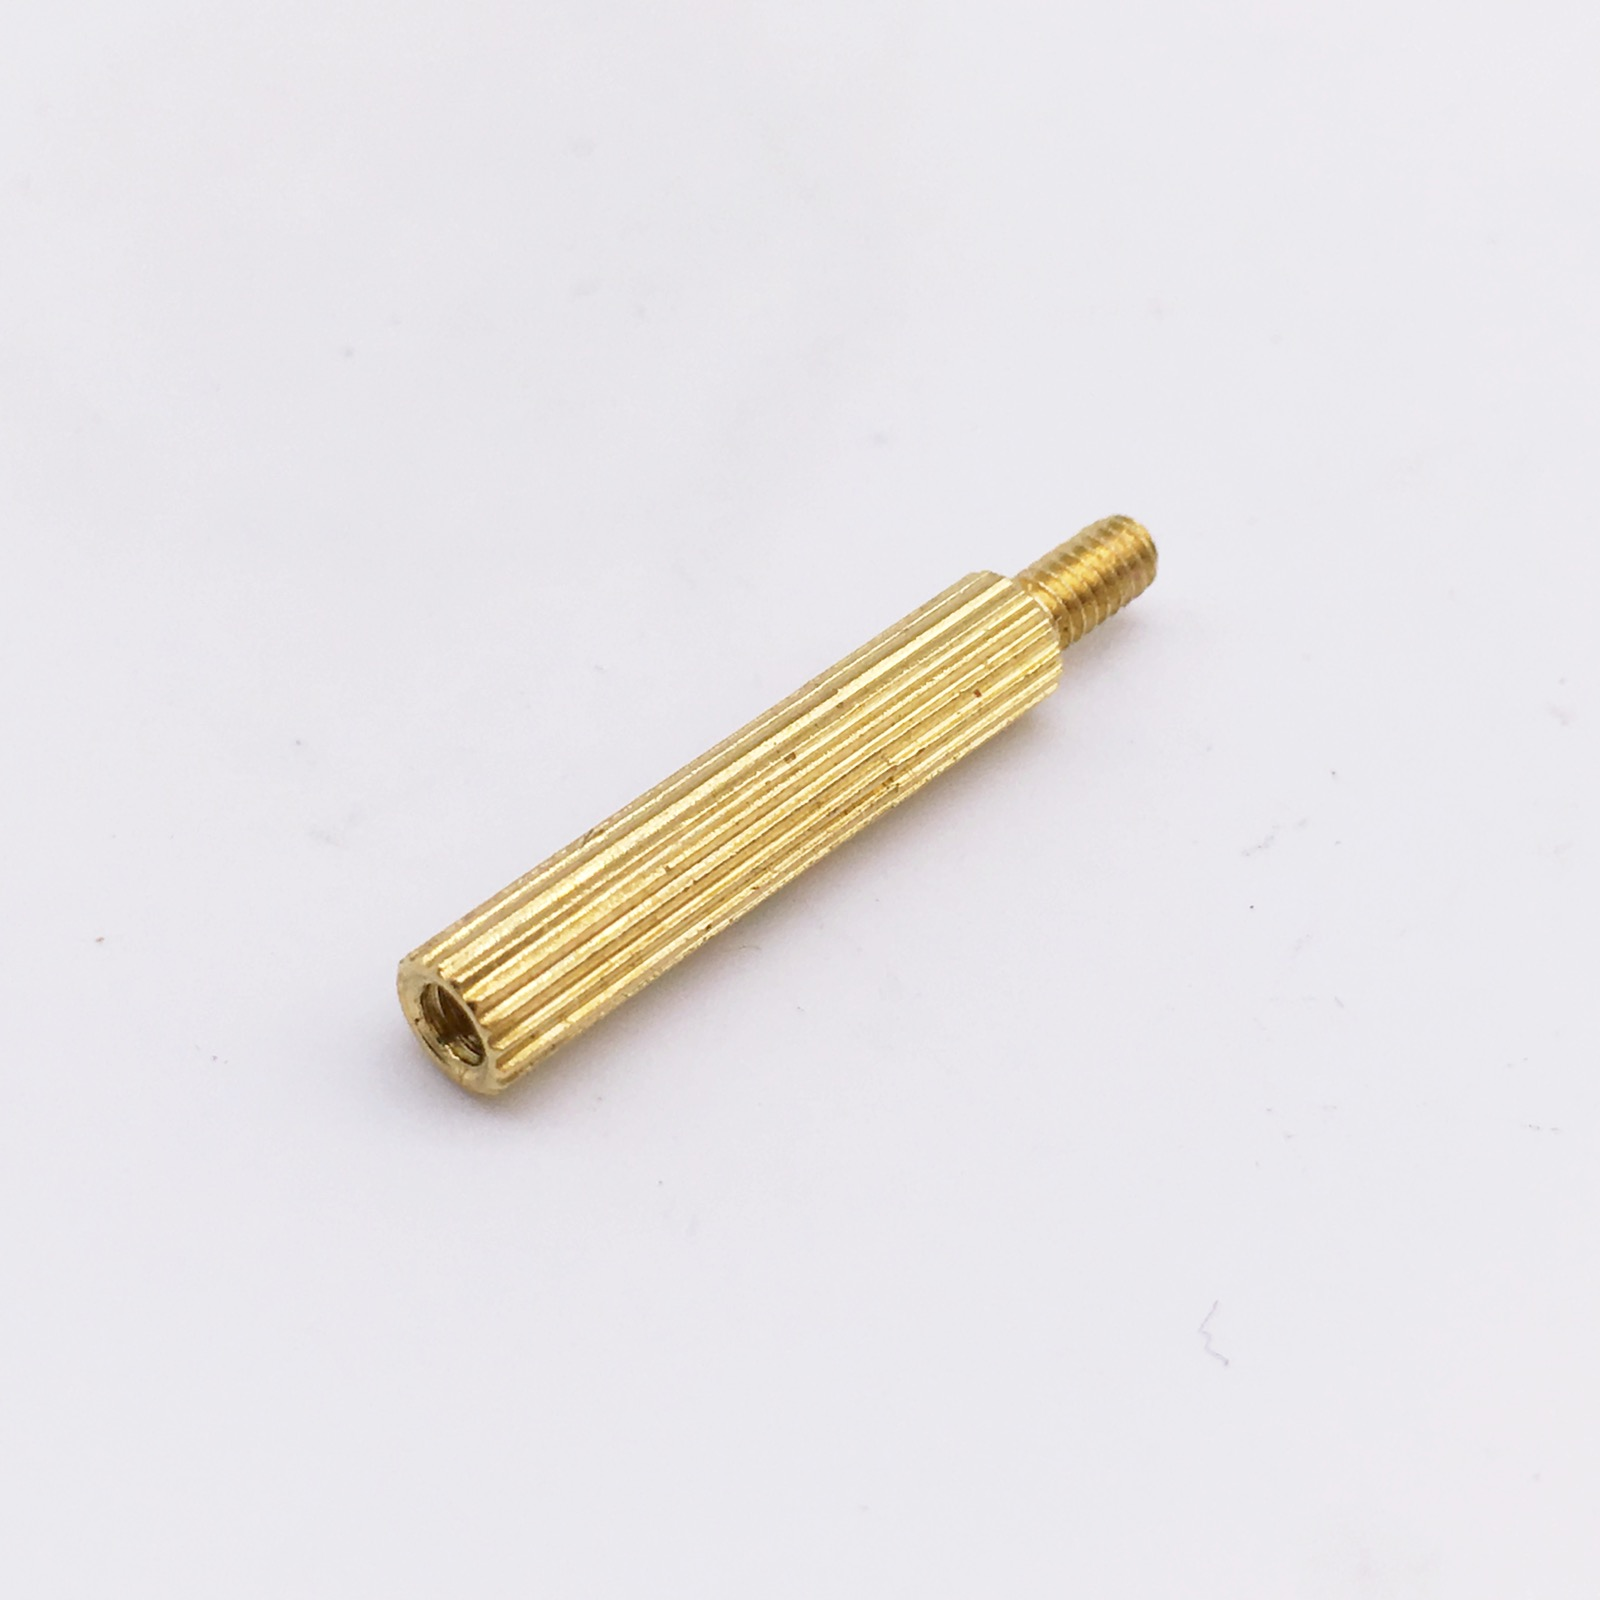 M2 Spacer Cylindrical Camera Standoff Thread Brass Pillars Male to Female m2 5 3 1pcs brass standoff 5mm spacer standard male female brass standoffs metric thread column high quality 1 piece sale